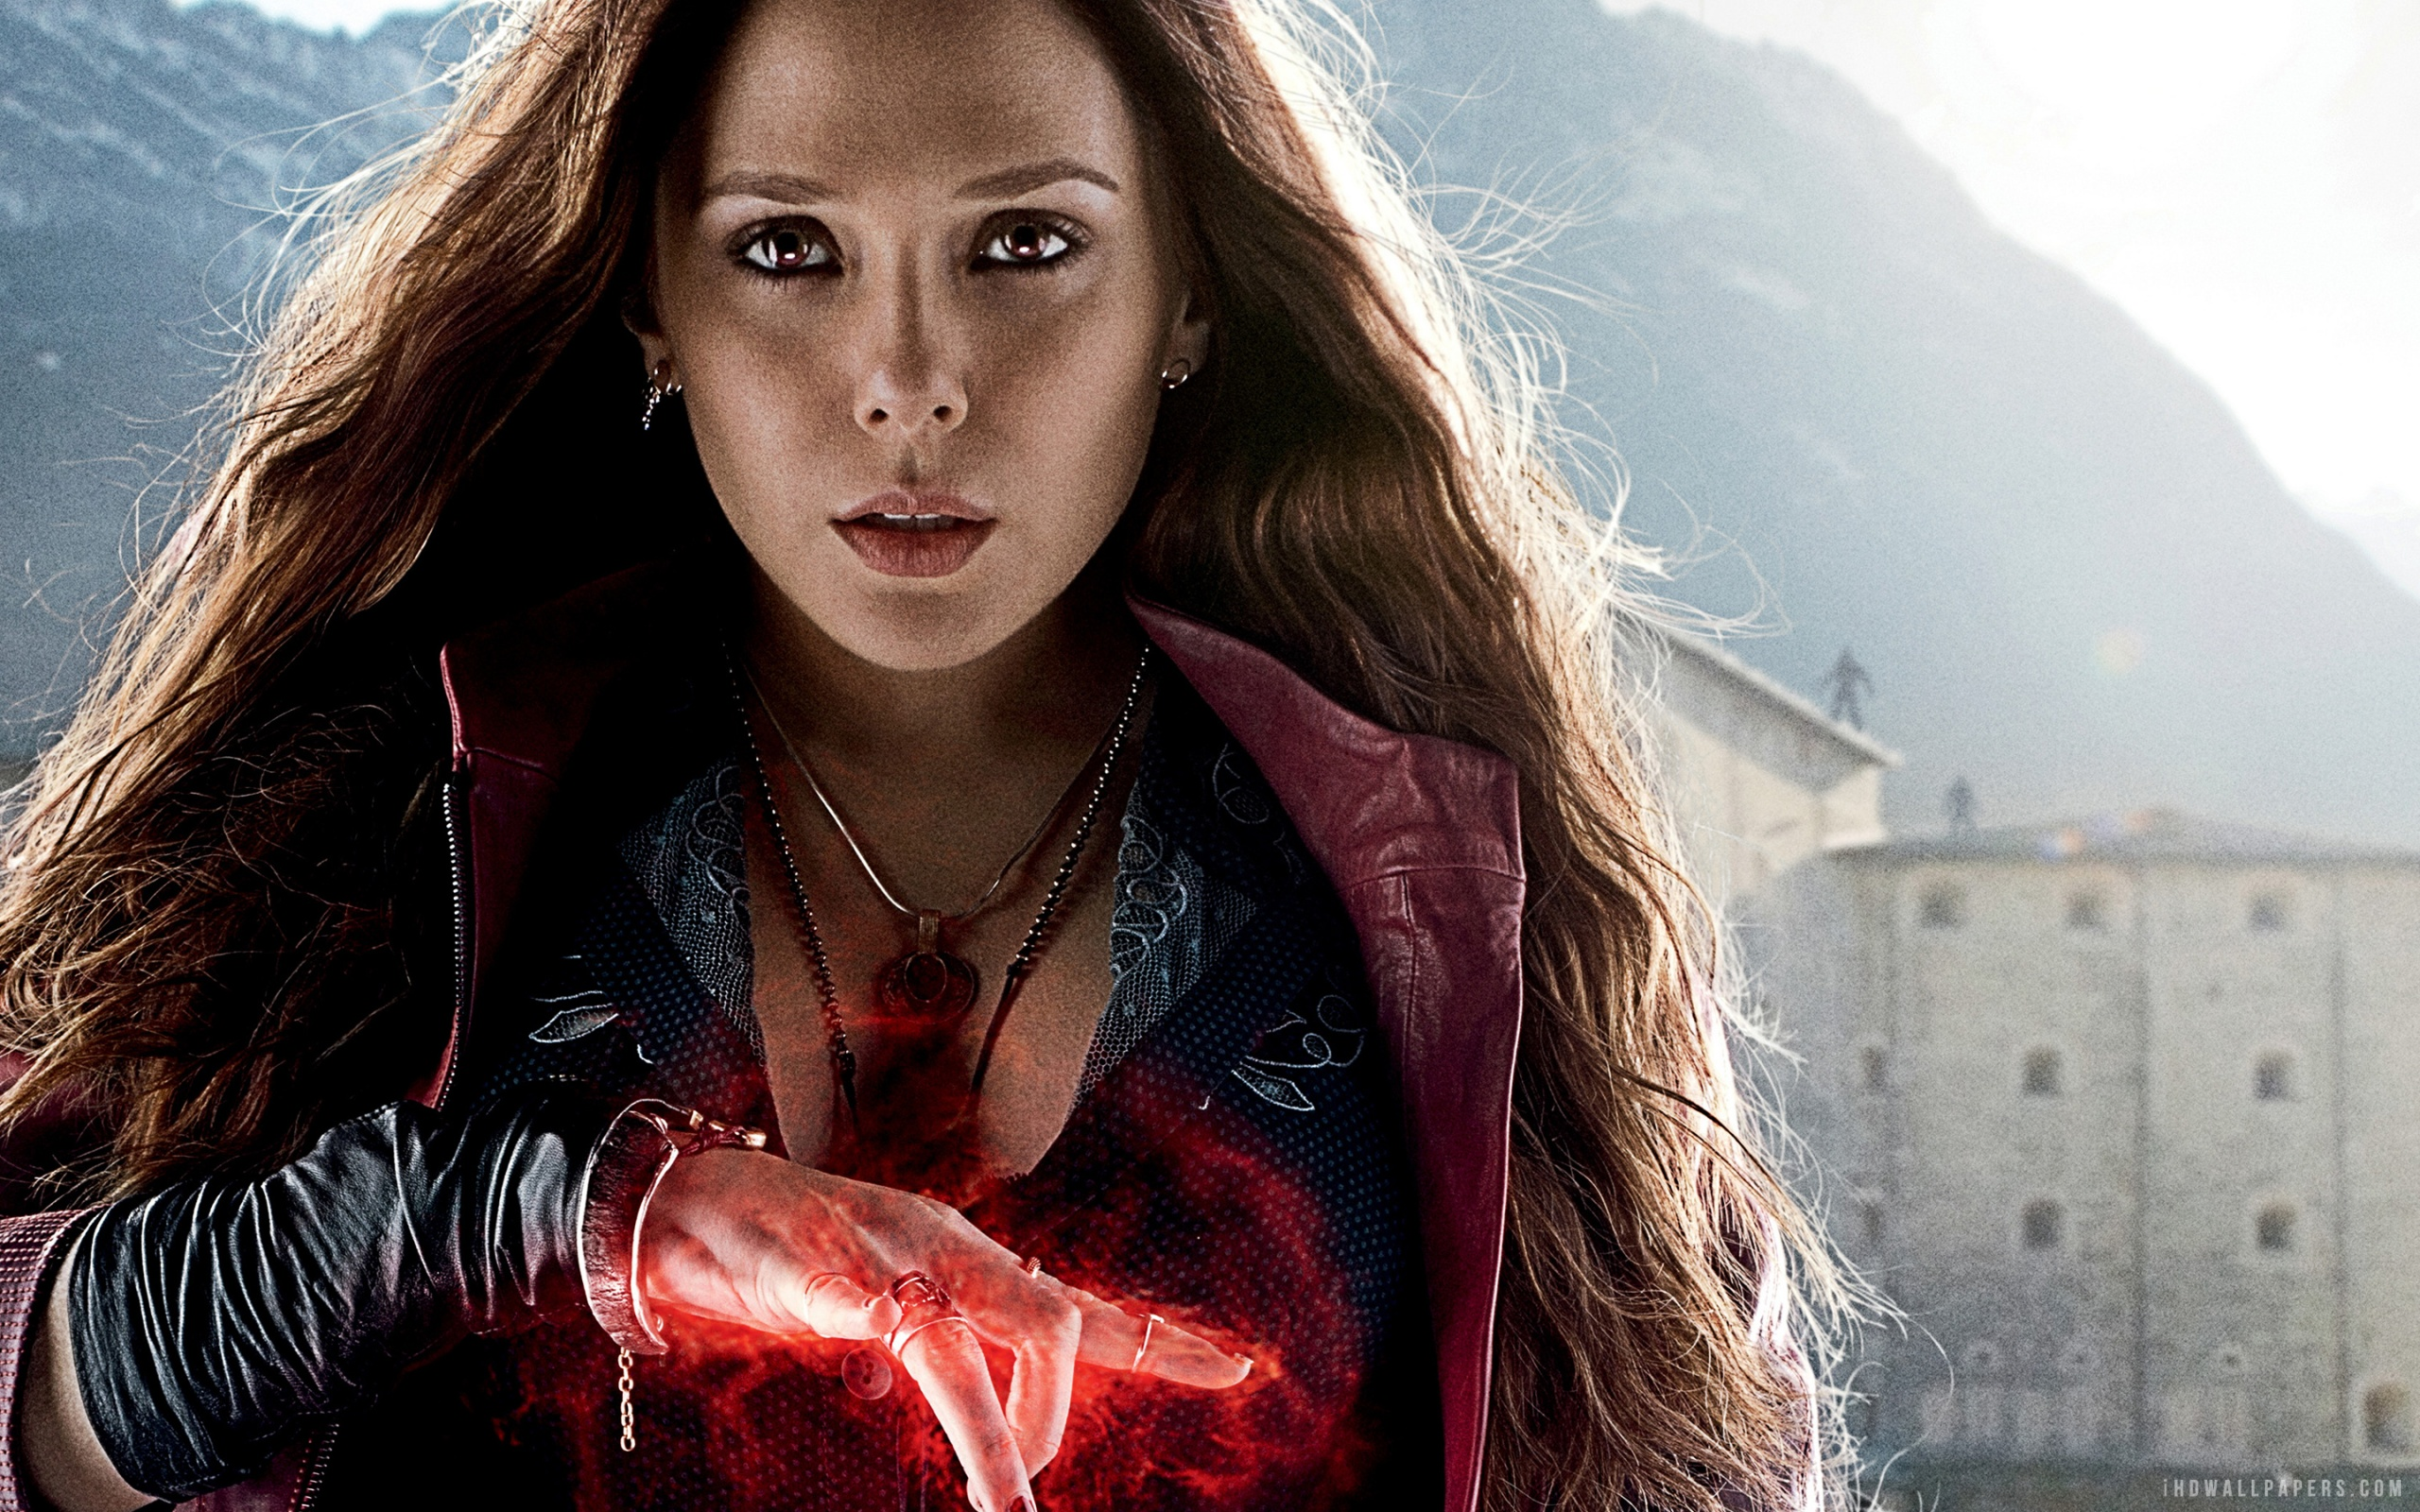 Scarlet Witch Avengers Age of Ultron HD Wallpaper   iHD Wallpapers 2560x1600